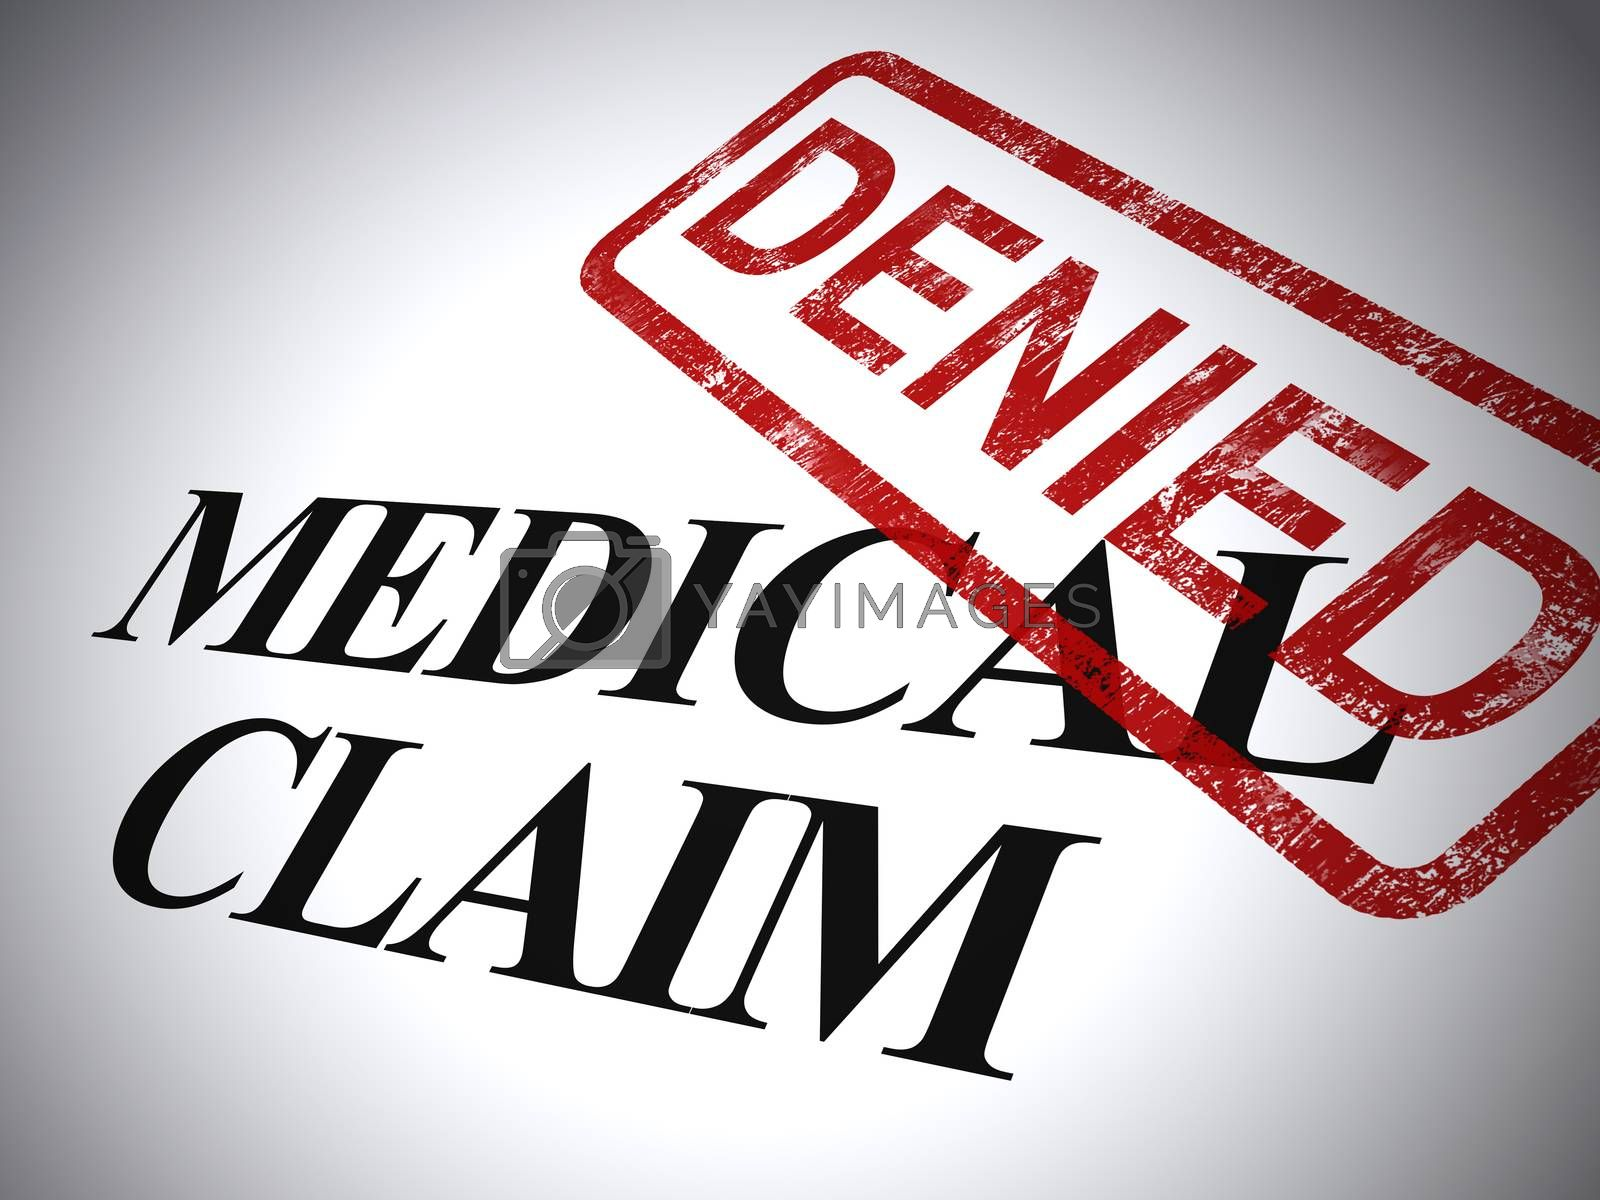 Medical claim denied form shows refused costs for health expenses. Healthcare insurance claim disallowed - 3d illustration